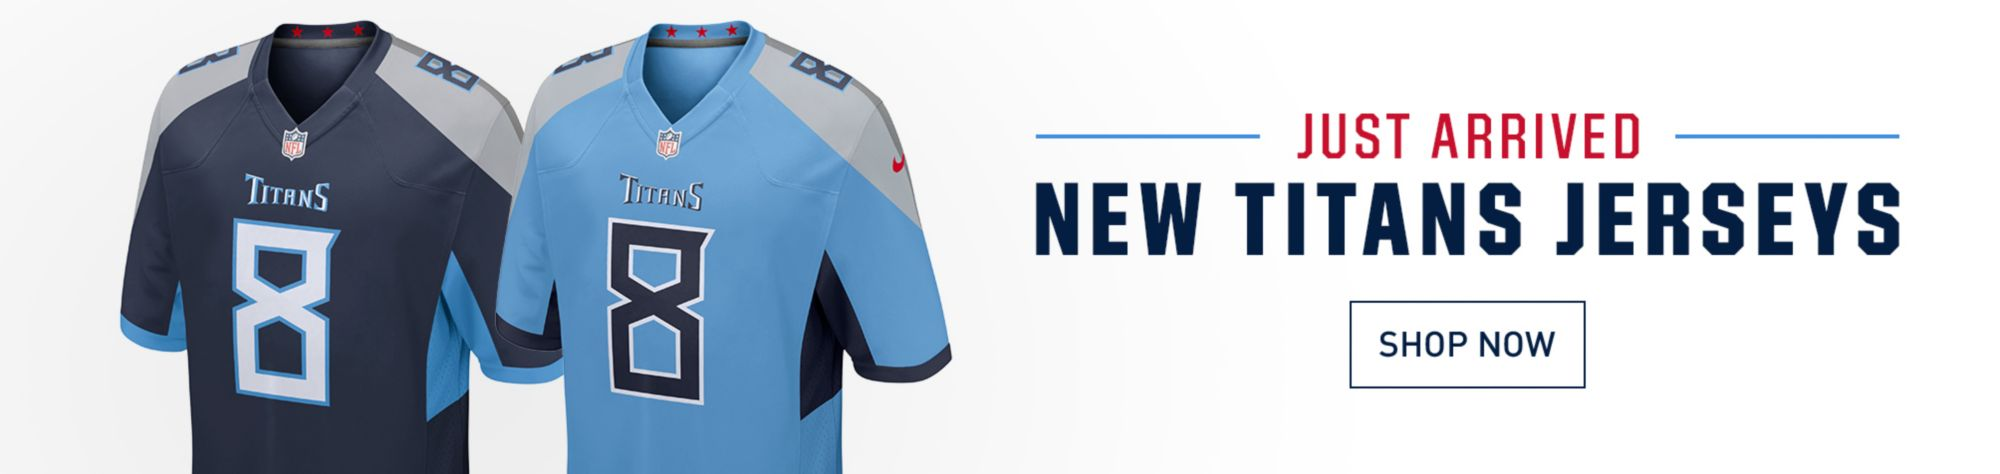 Just Arrived - New Titans Jerseys - Shop Now